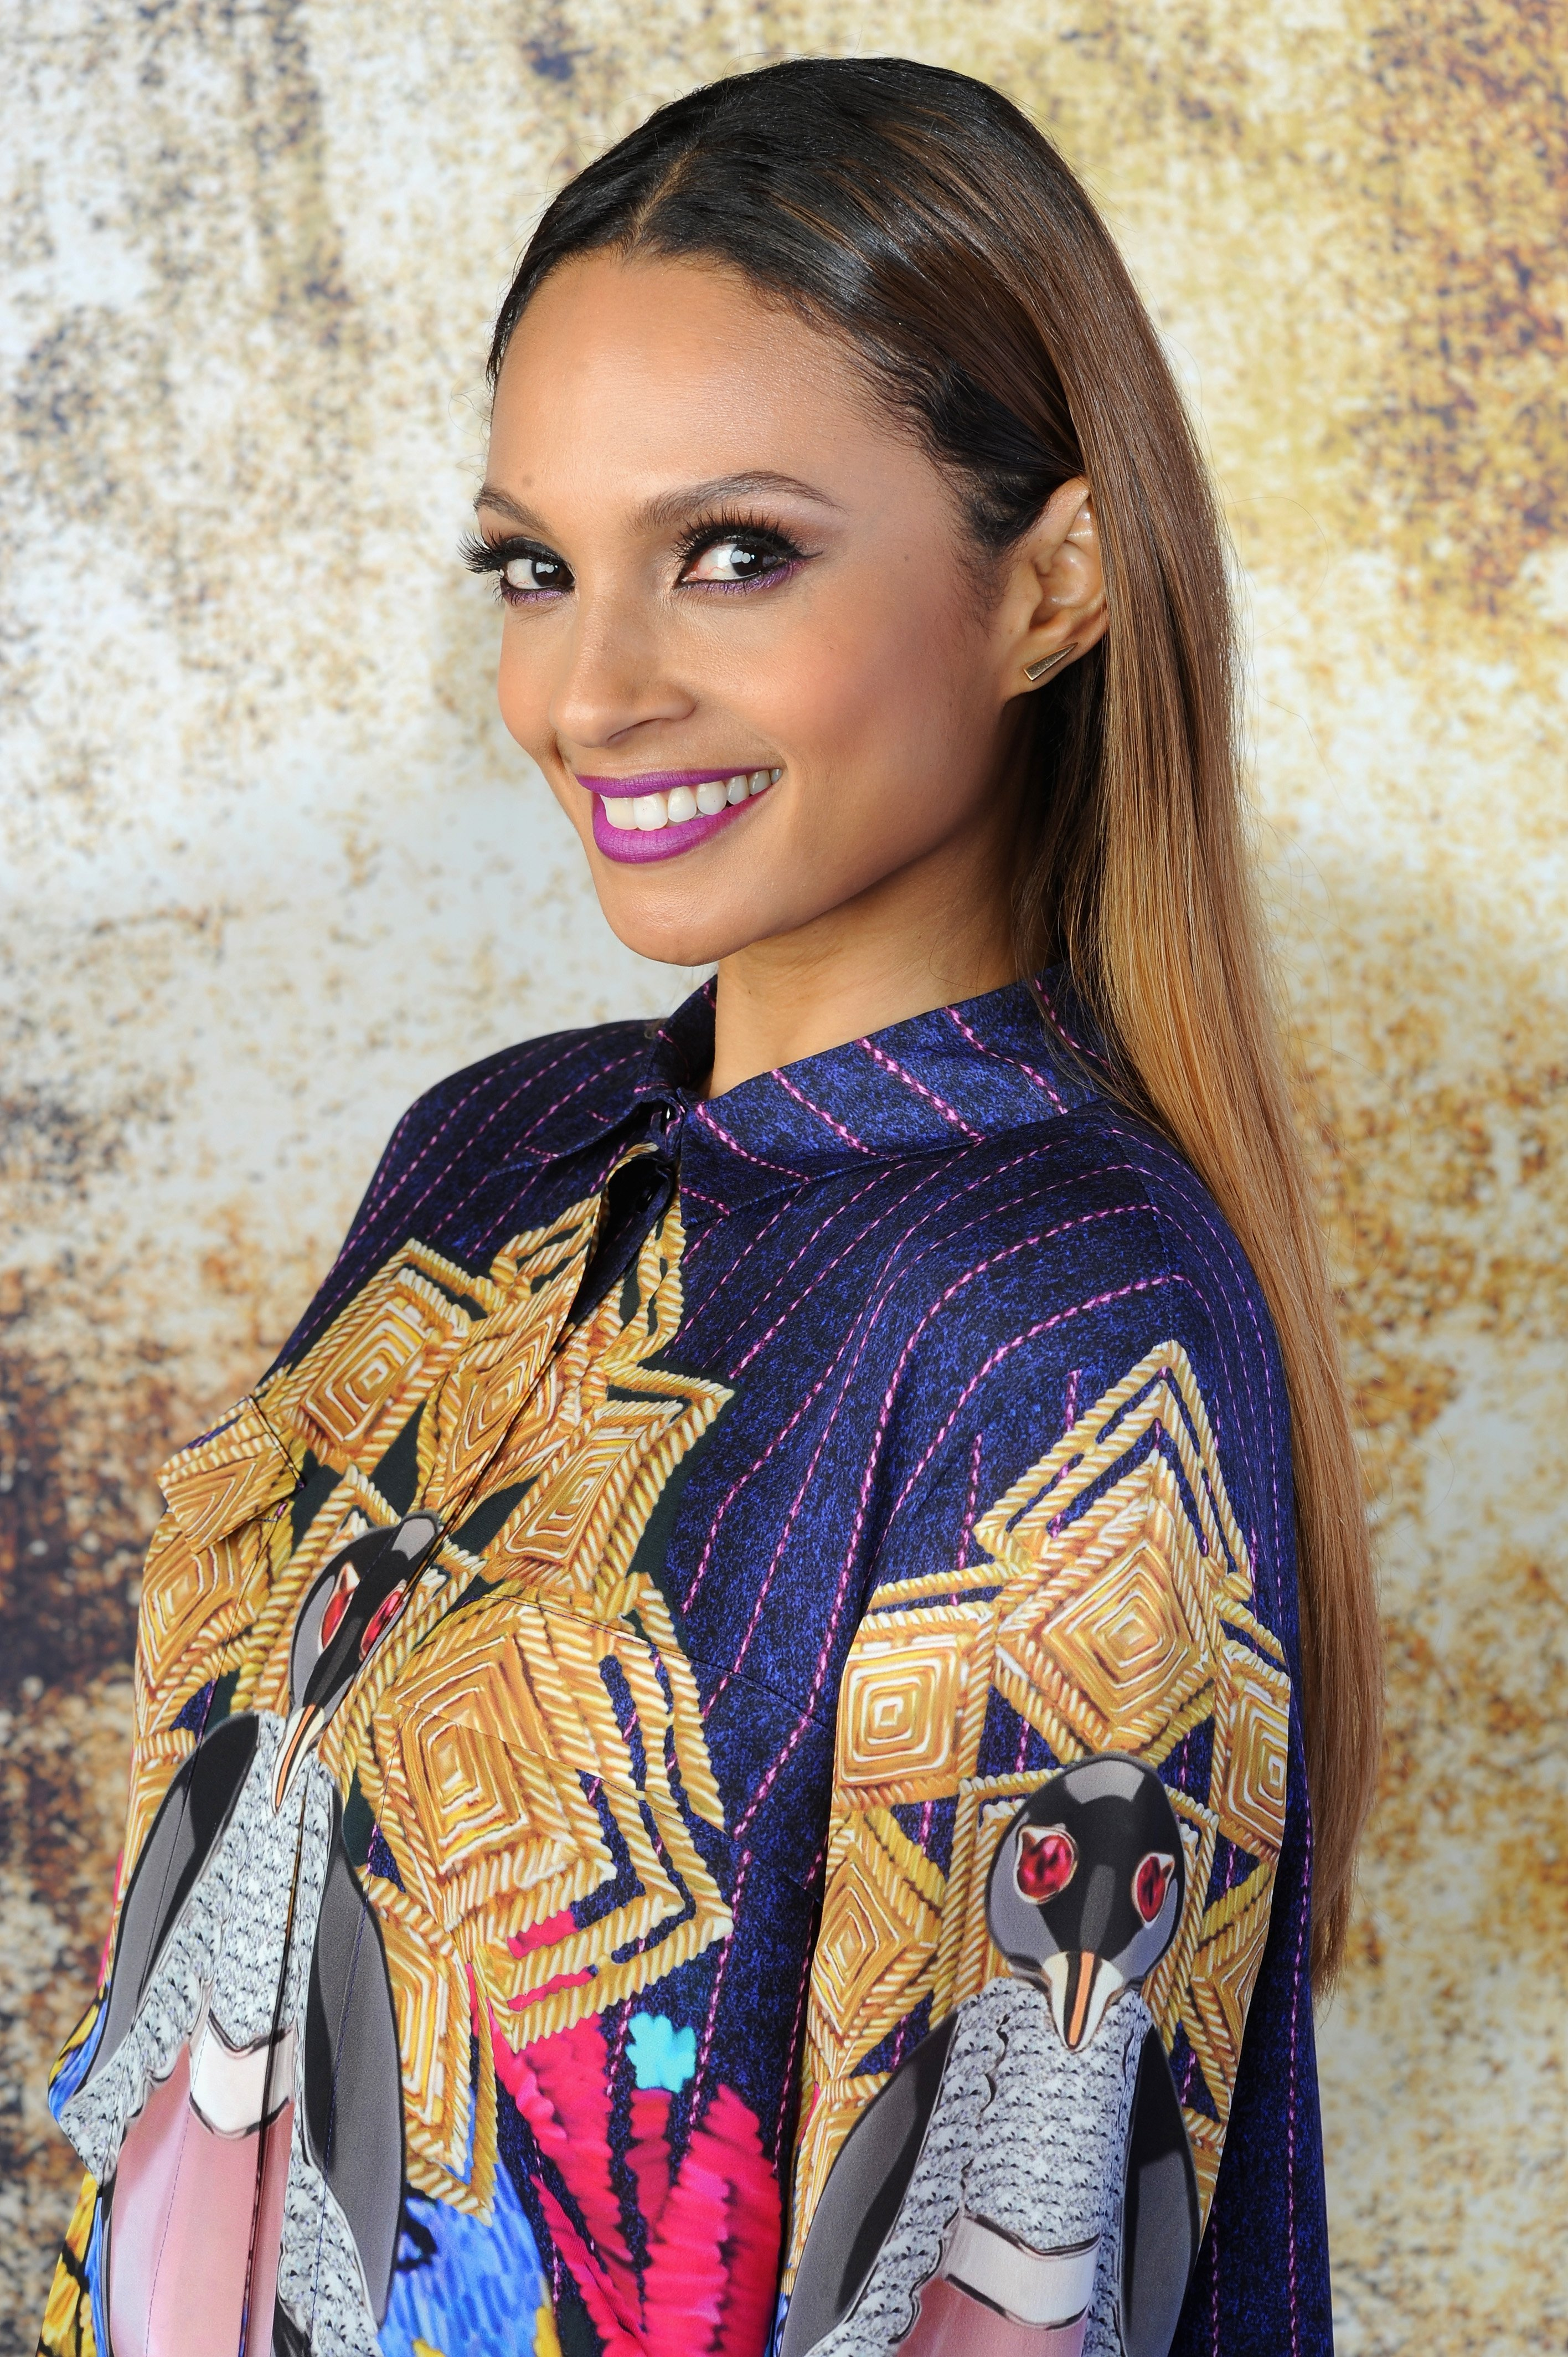 Alesha Dixon attends the MTV EMA's 2014 at The Hydro on November 9, 2014, in Glasgow, Scotland. Source: Getty Images.